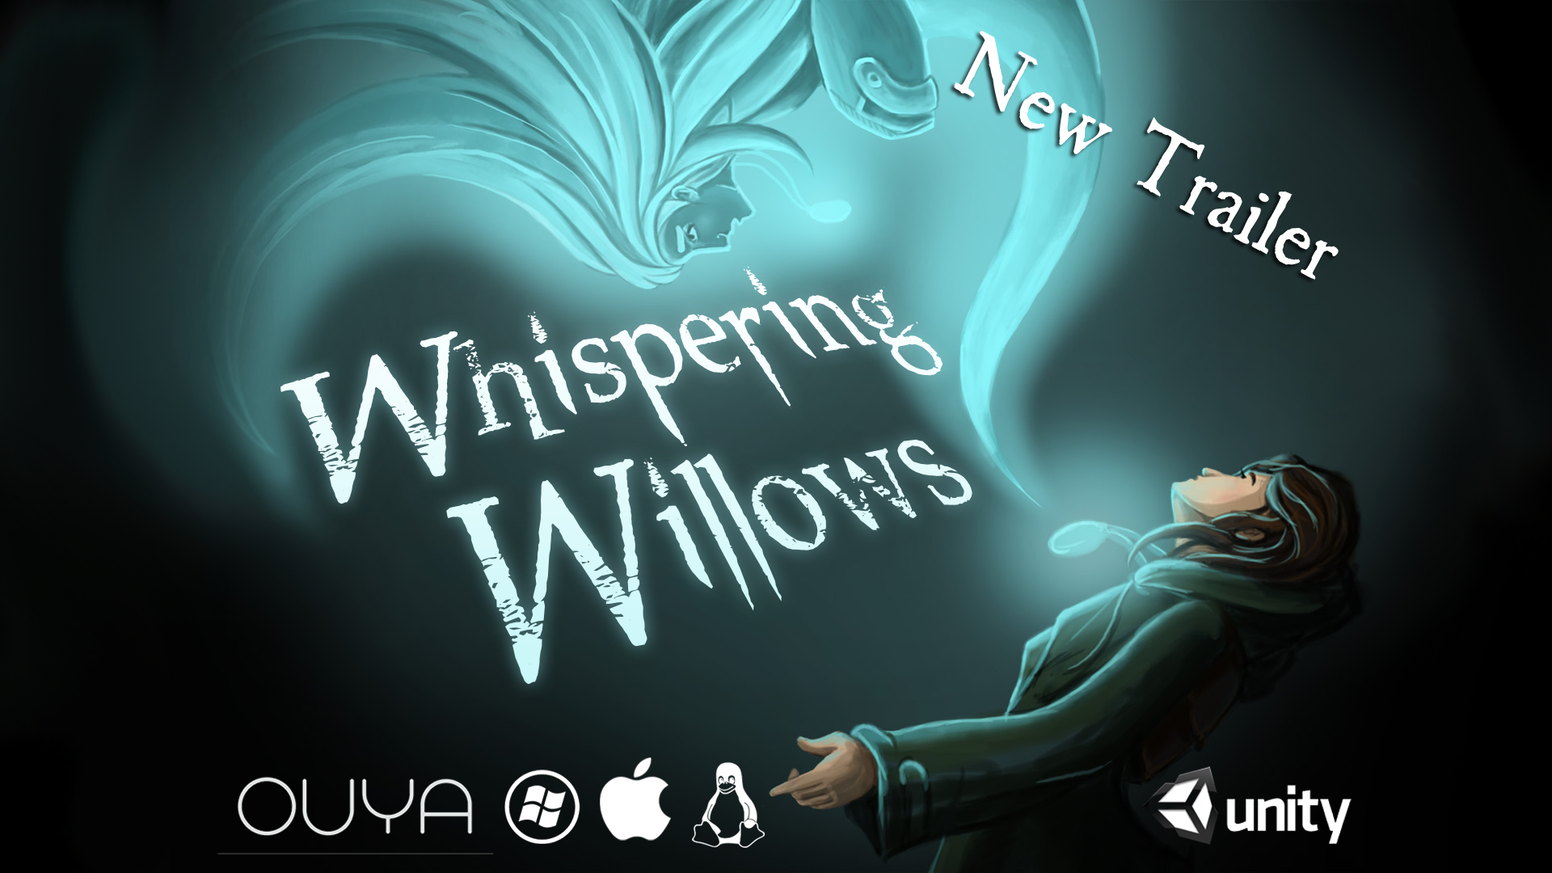 Elena must control her spirit to save her father. Help ghosts and solve puzzles to uncover the secrets of the Willows Mansion.